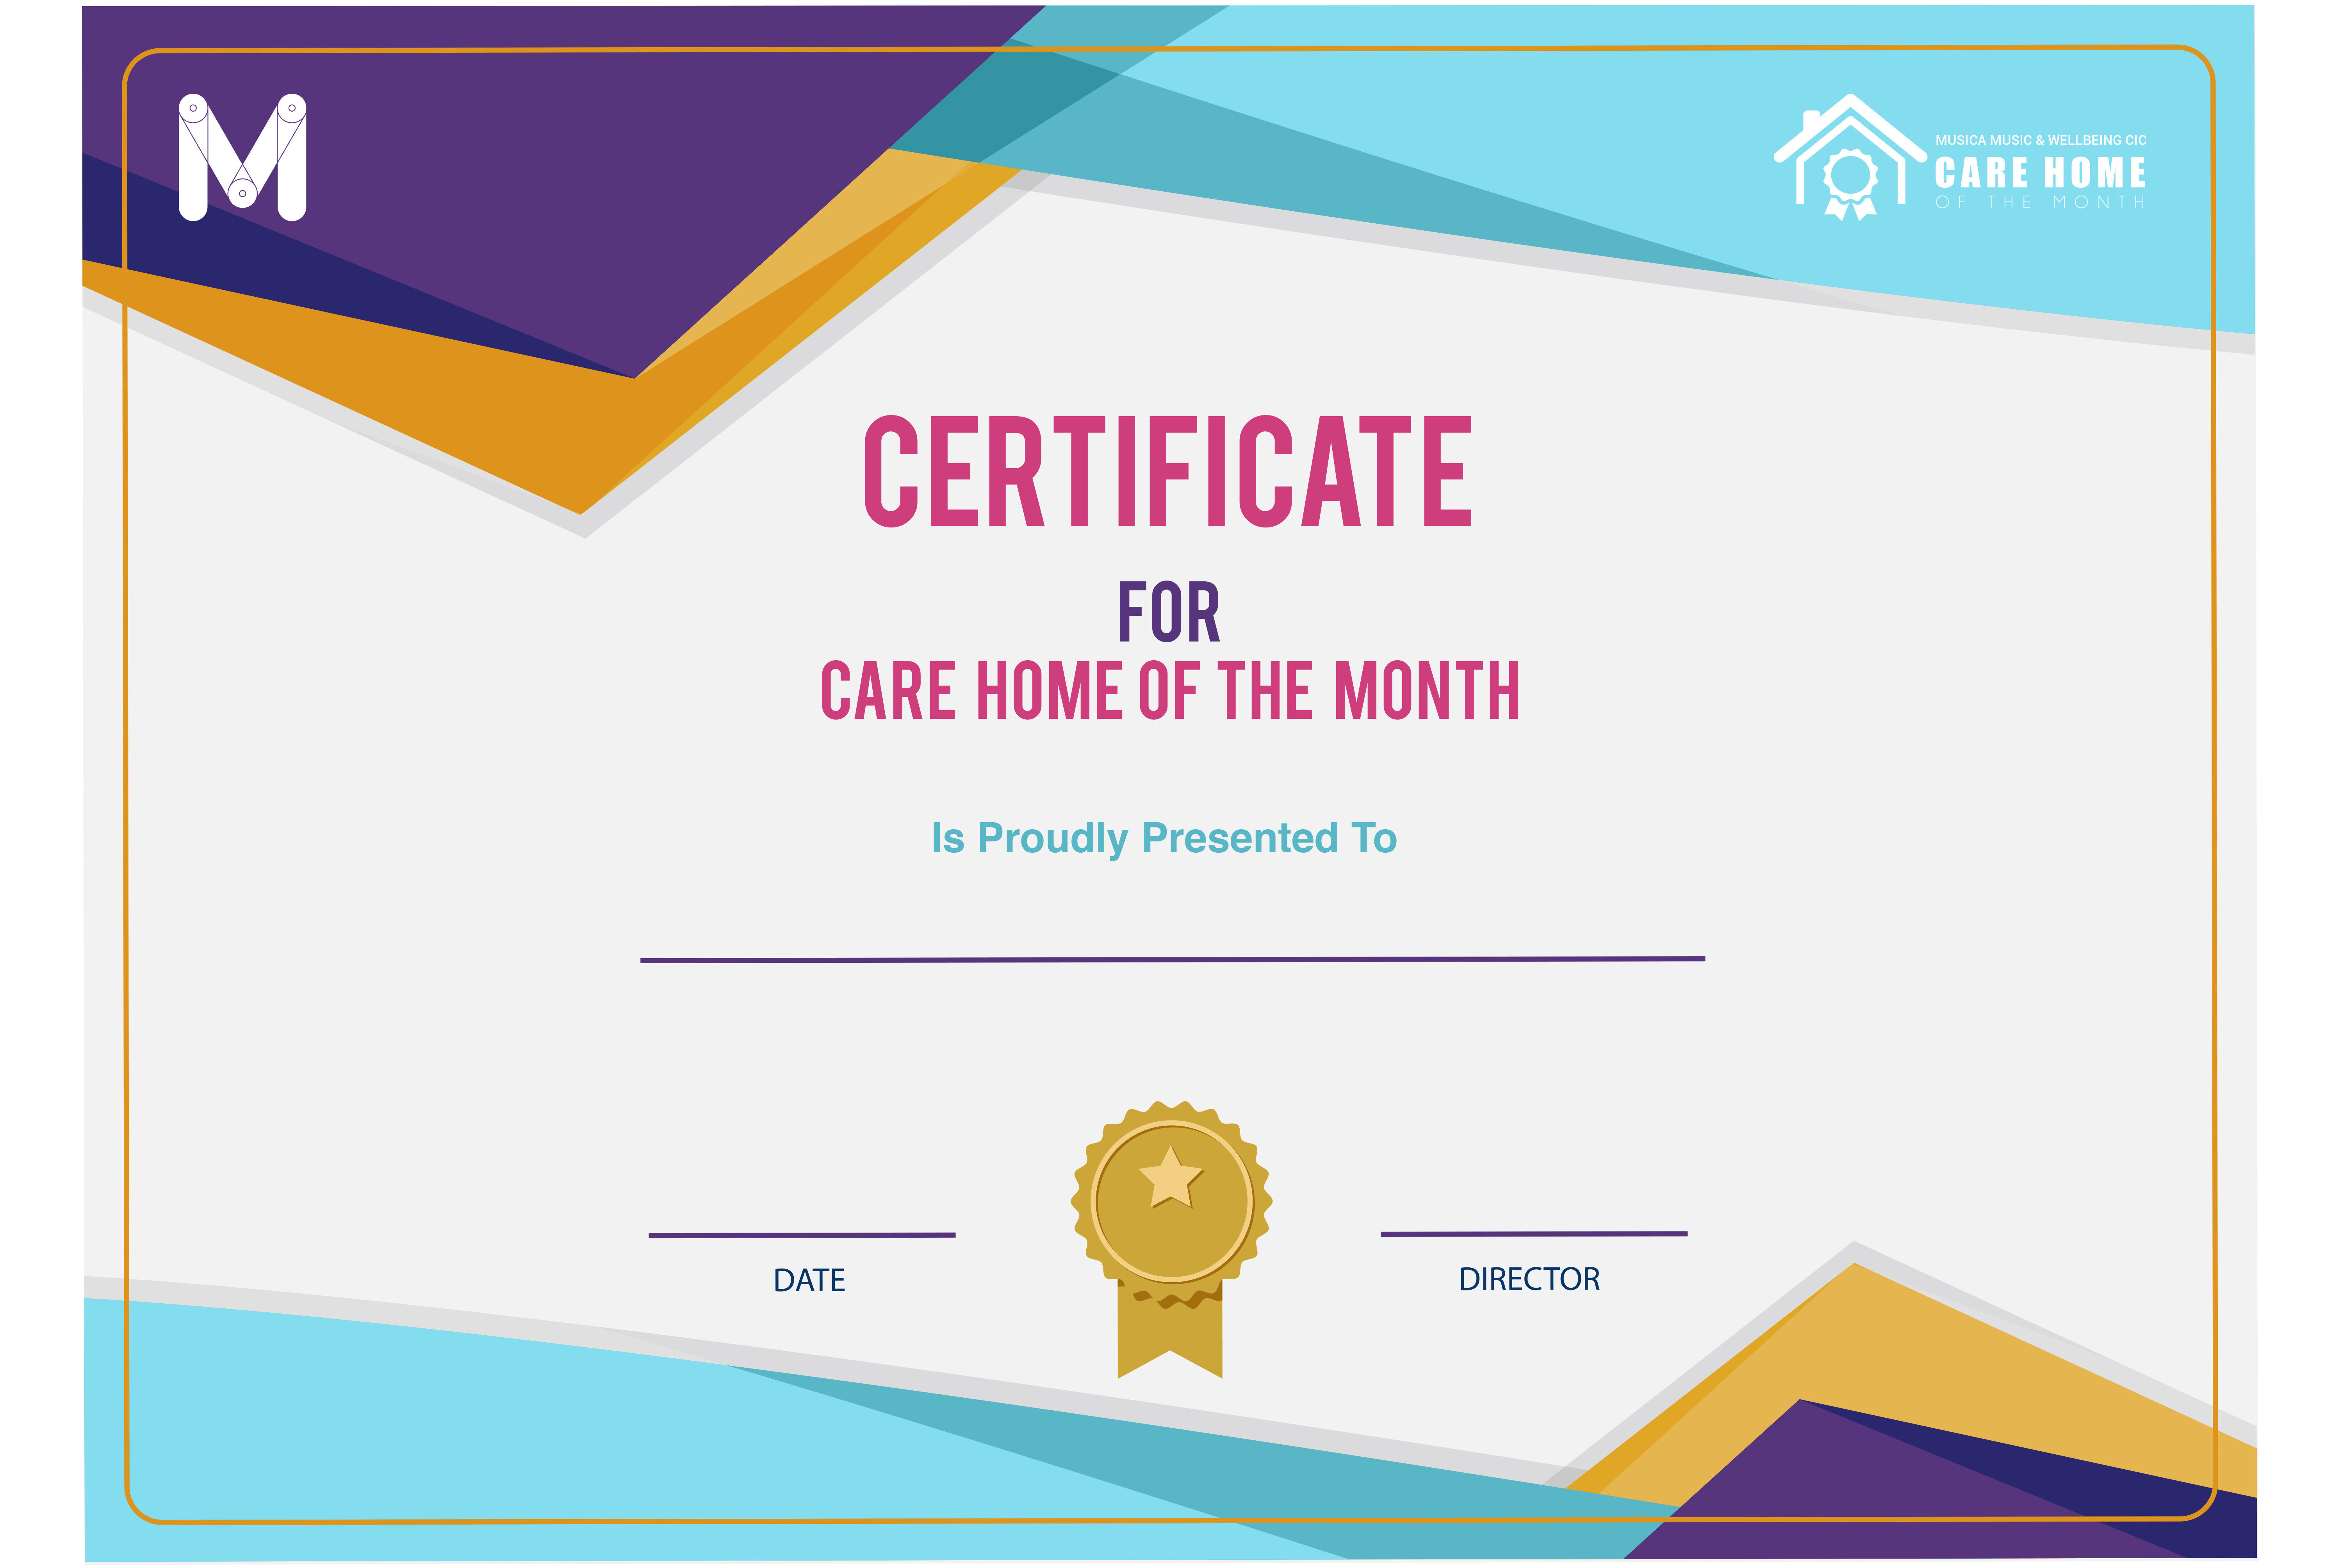 https://musica-music.co.uk/wp-content/uploads/2019/05/Care-Home-Award-Certificate.png